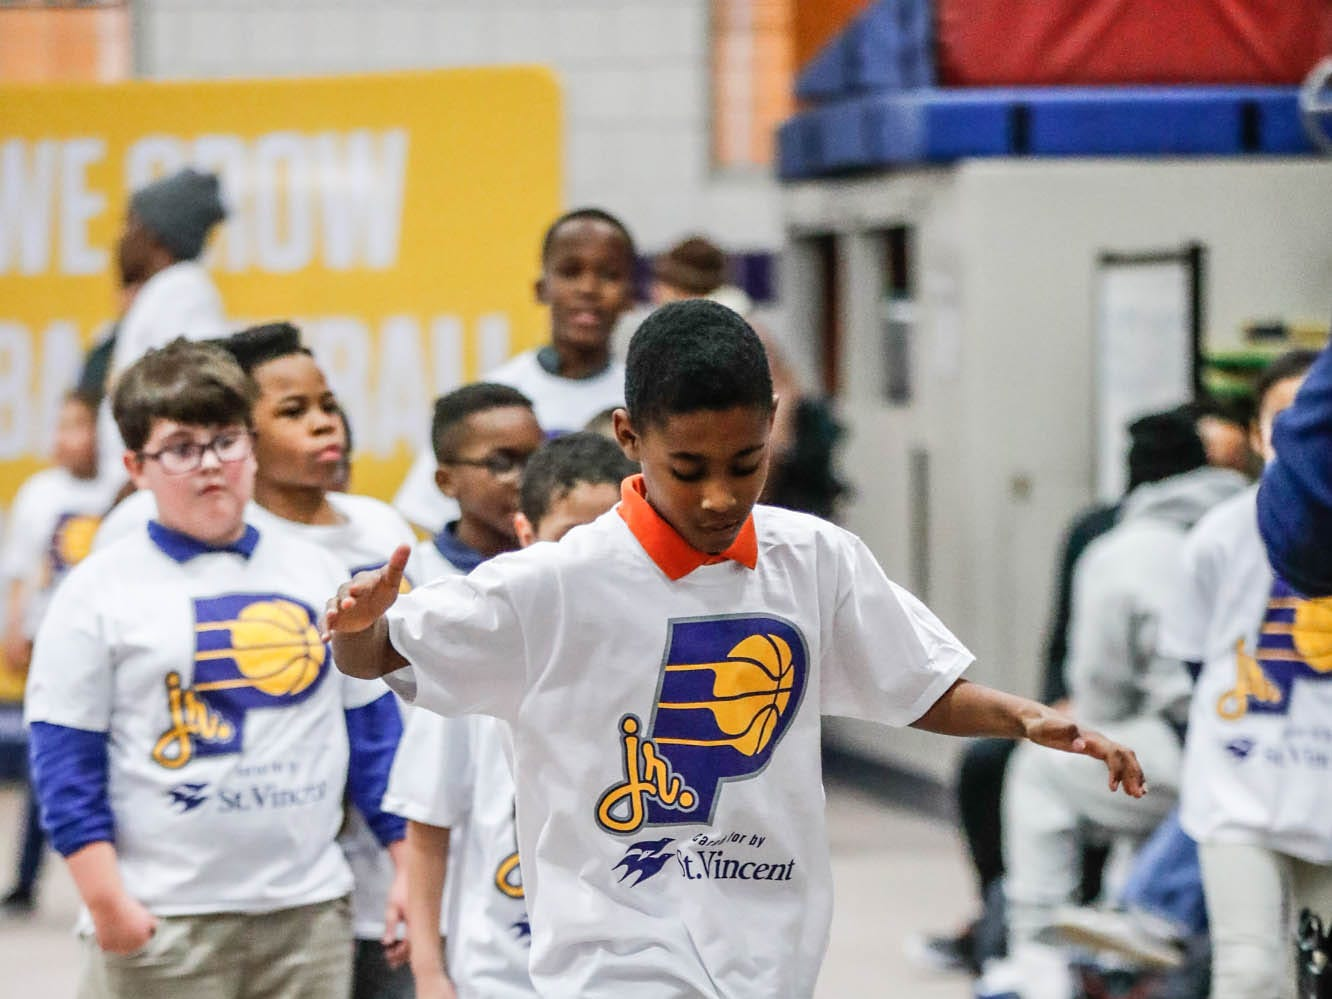 DJ Sawyers takes part in a Jr. Pacers Clinic at Concord Neighborhood Center, on Monday, Jan. 14, 2019.